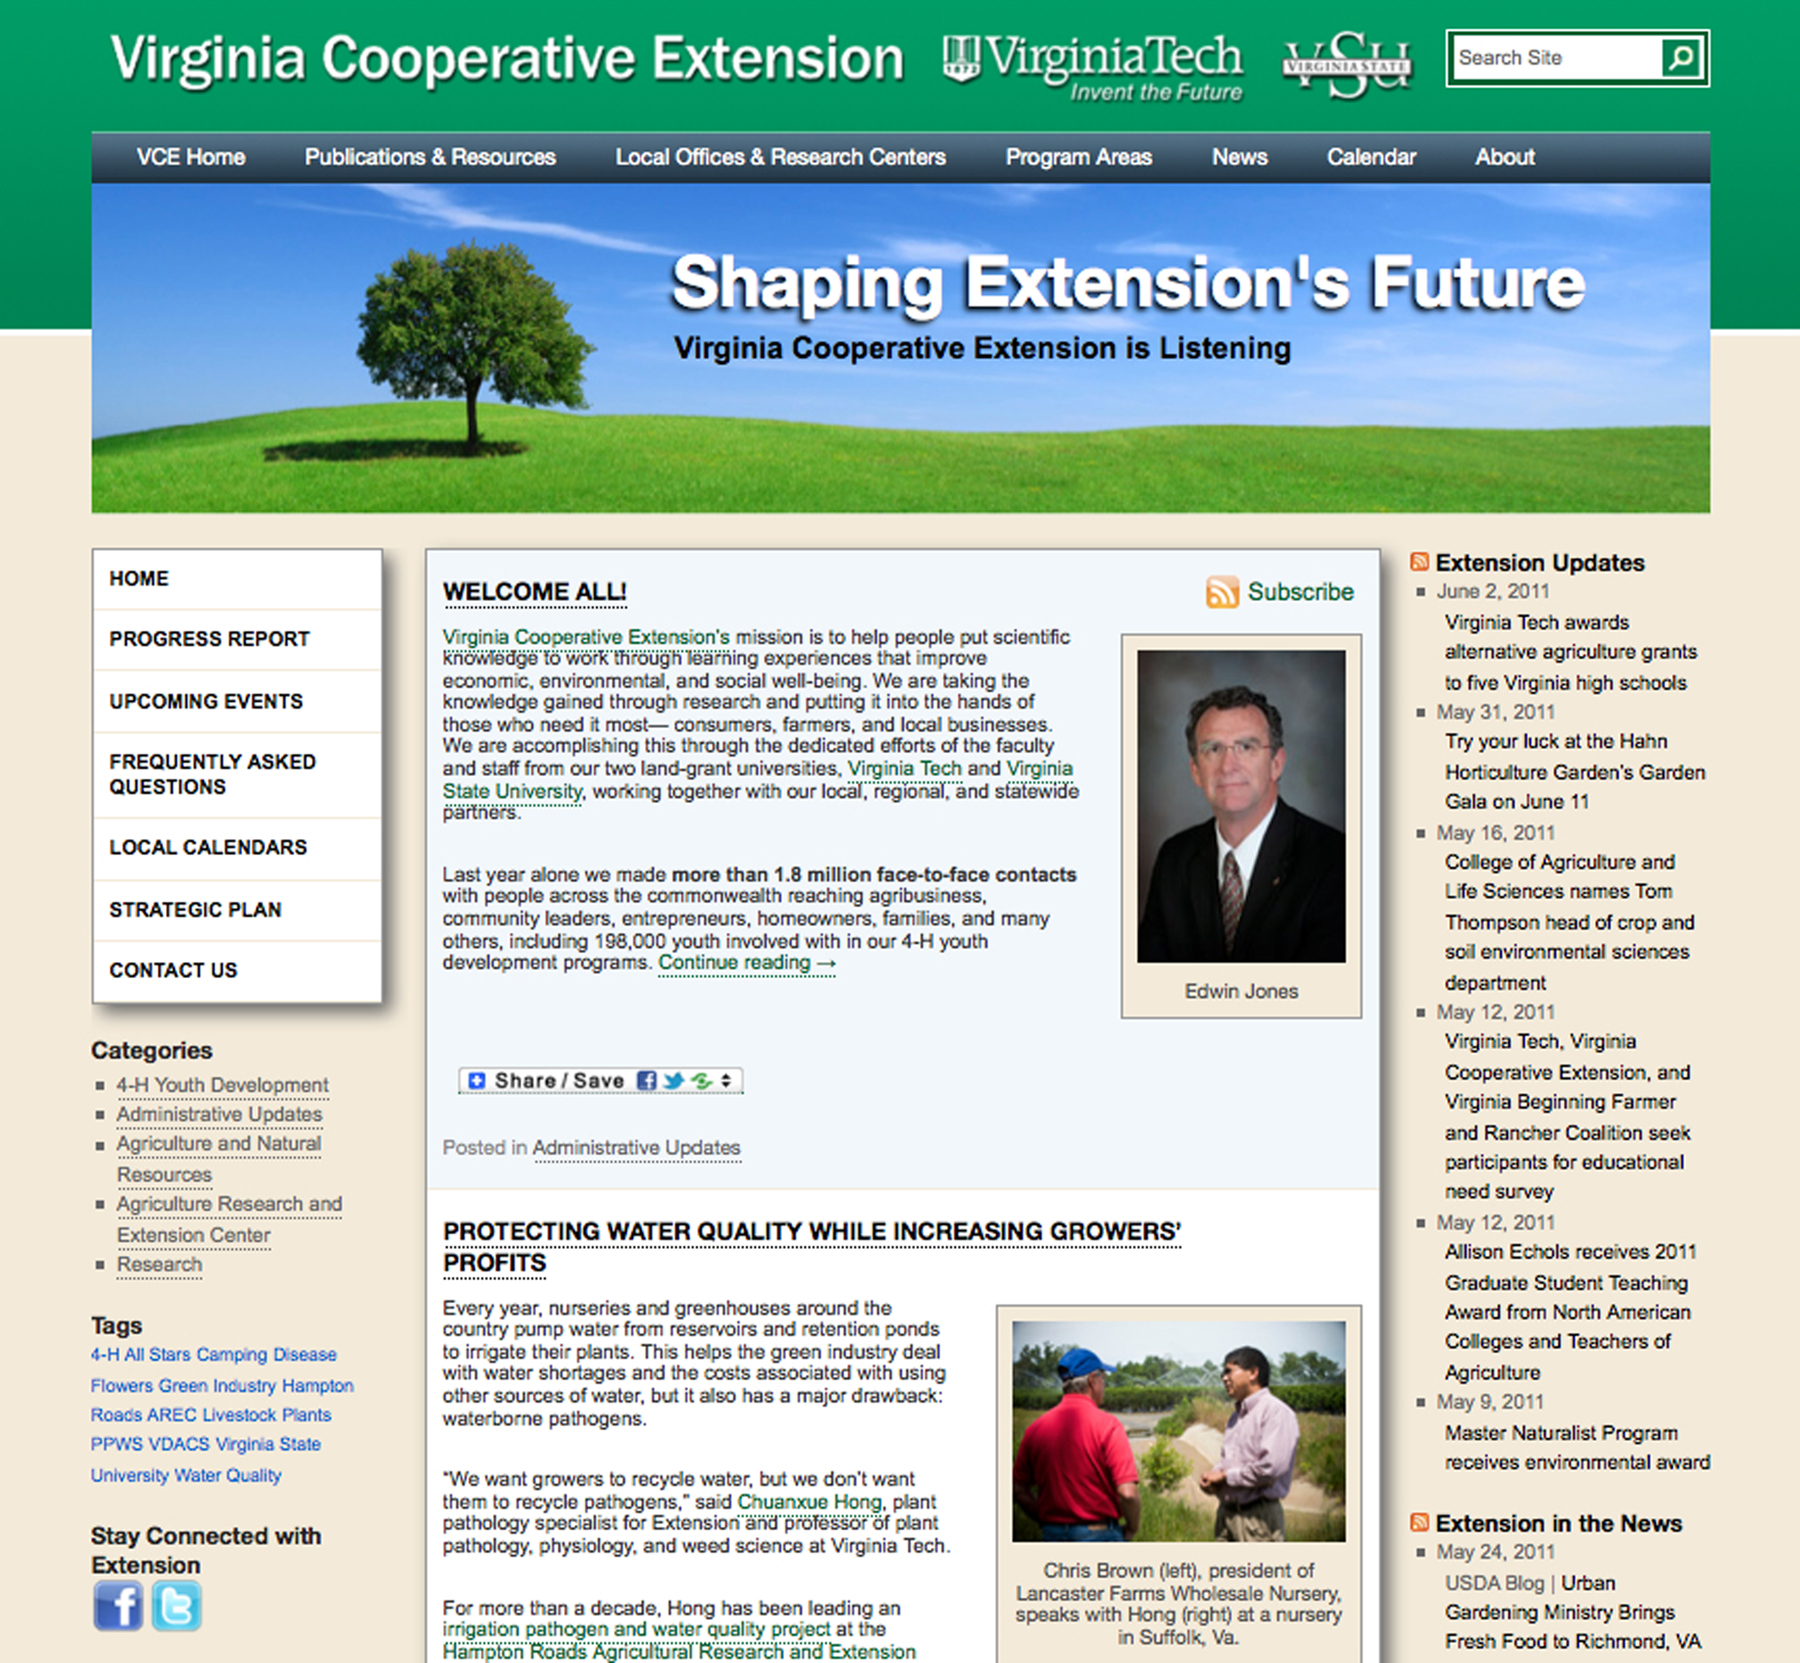 Shaping Extension's Future